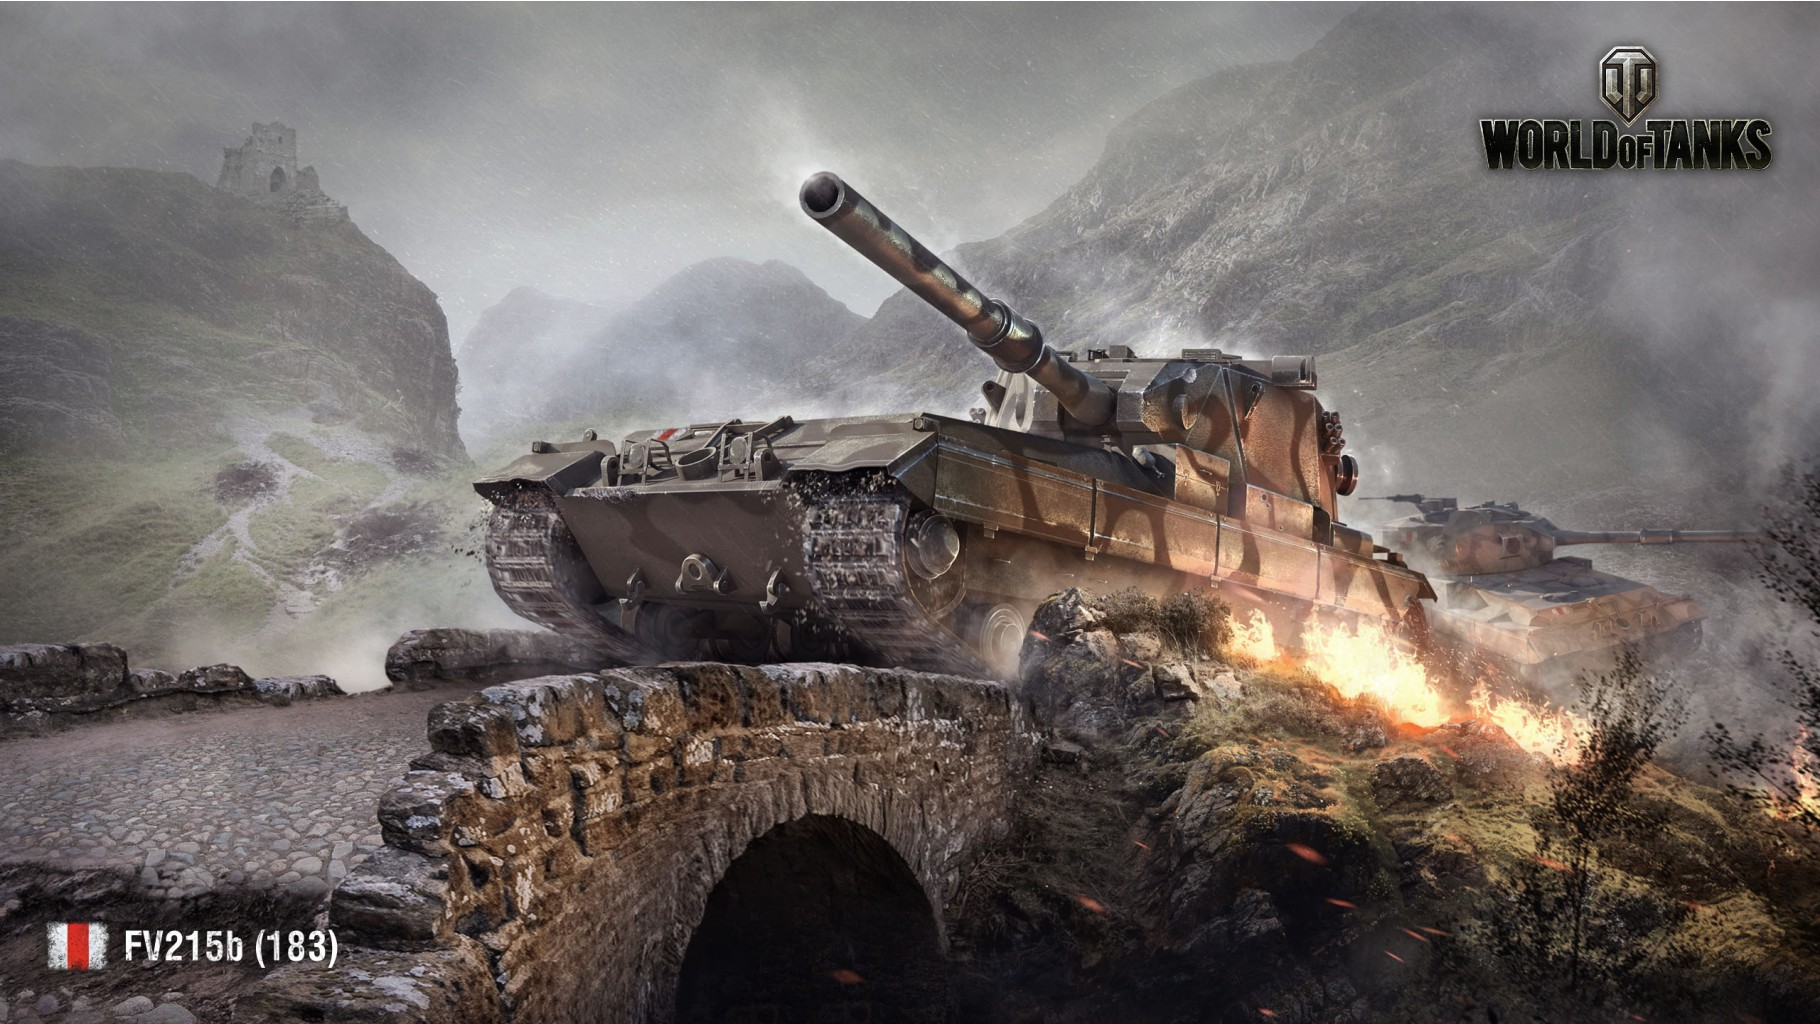 Fv215b 183 world of tanks 075446 1.jpg